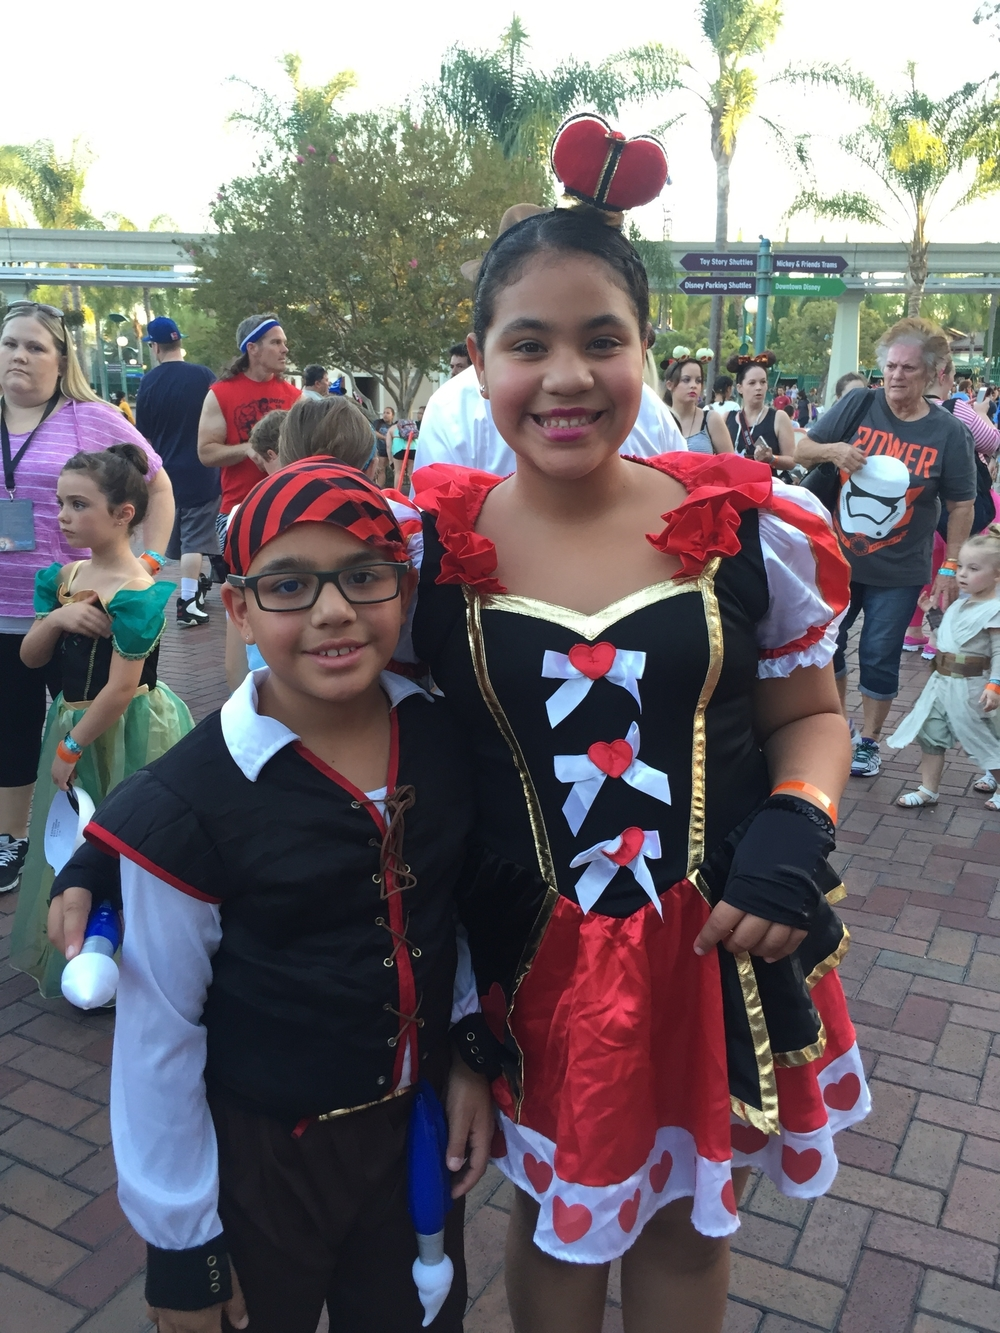 mickeys-halloween-party-costume.jpg